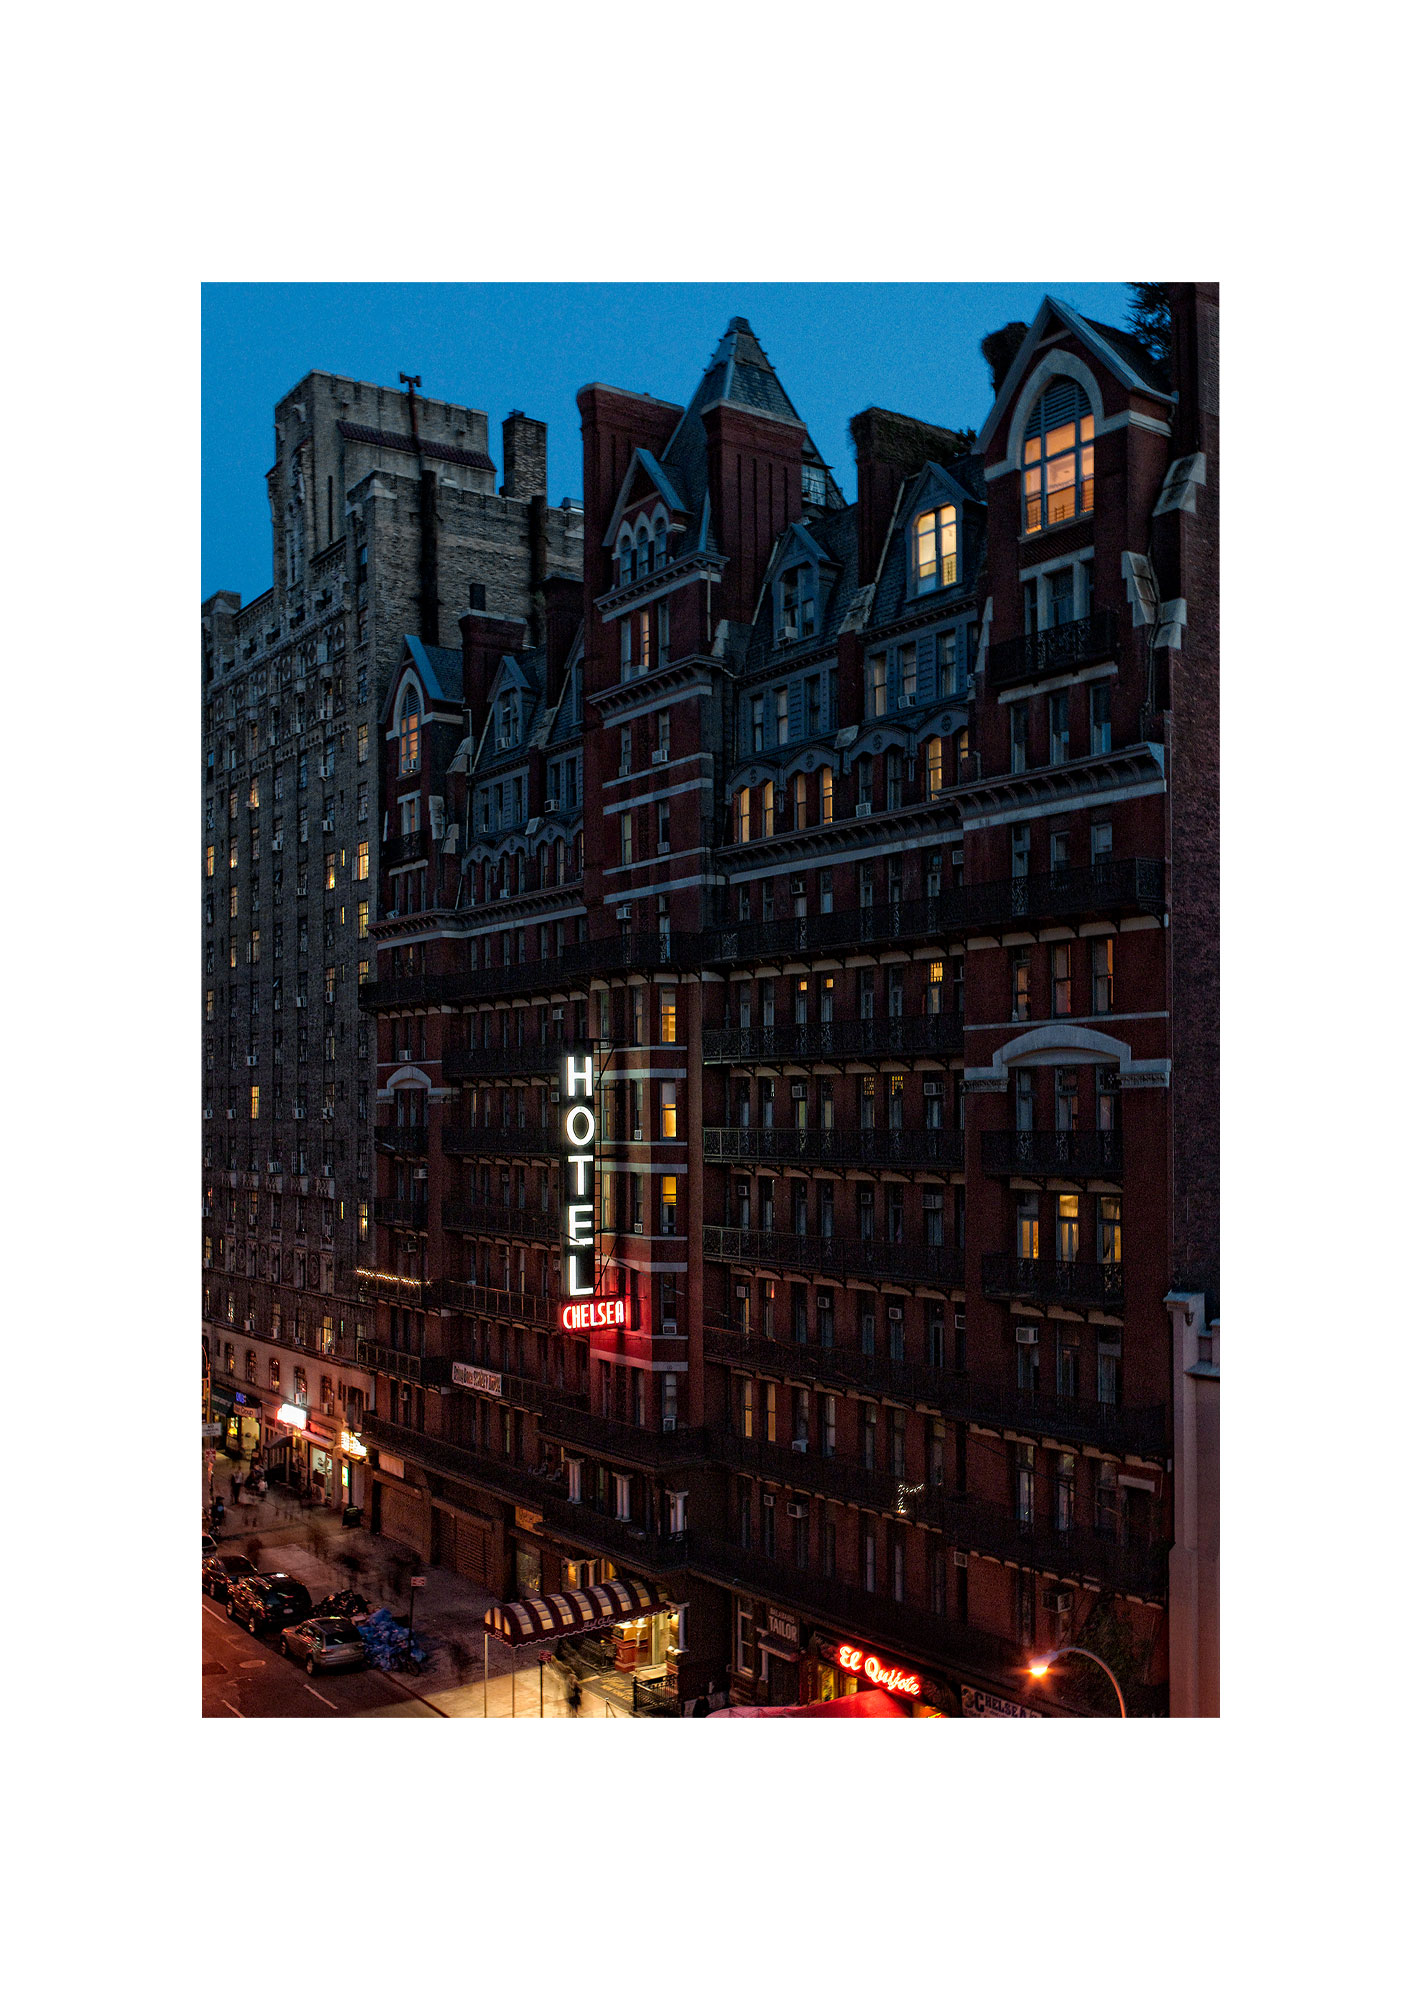 KARSTEN STAIGER    NEW YORK LOVE STORY   Title:      APRIL 23, 2009         Edition of 5   44 x 32 inches  Kodak Metallic with white ArtBox        $3,500.00